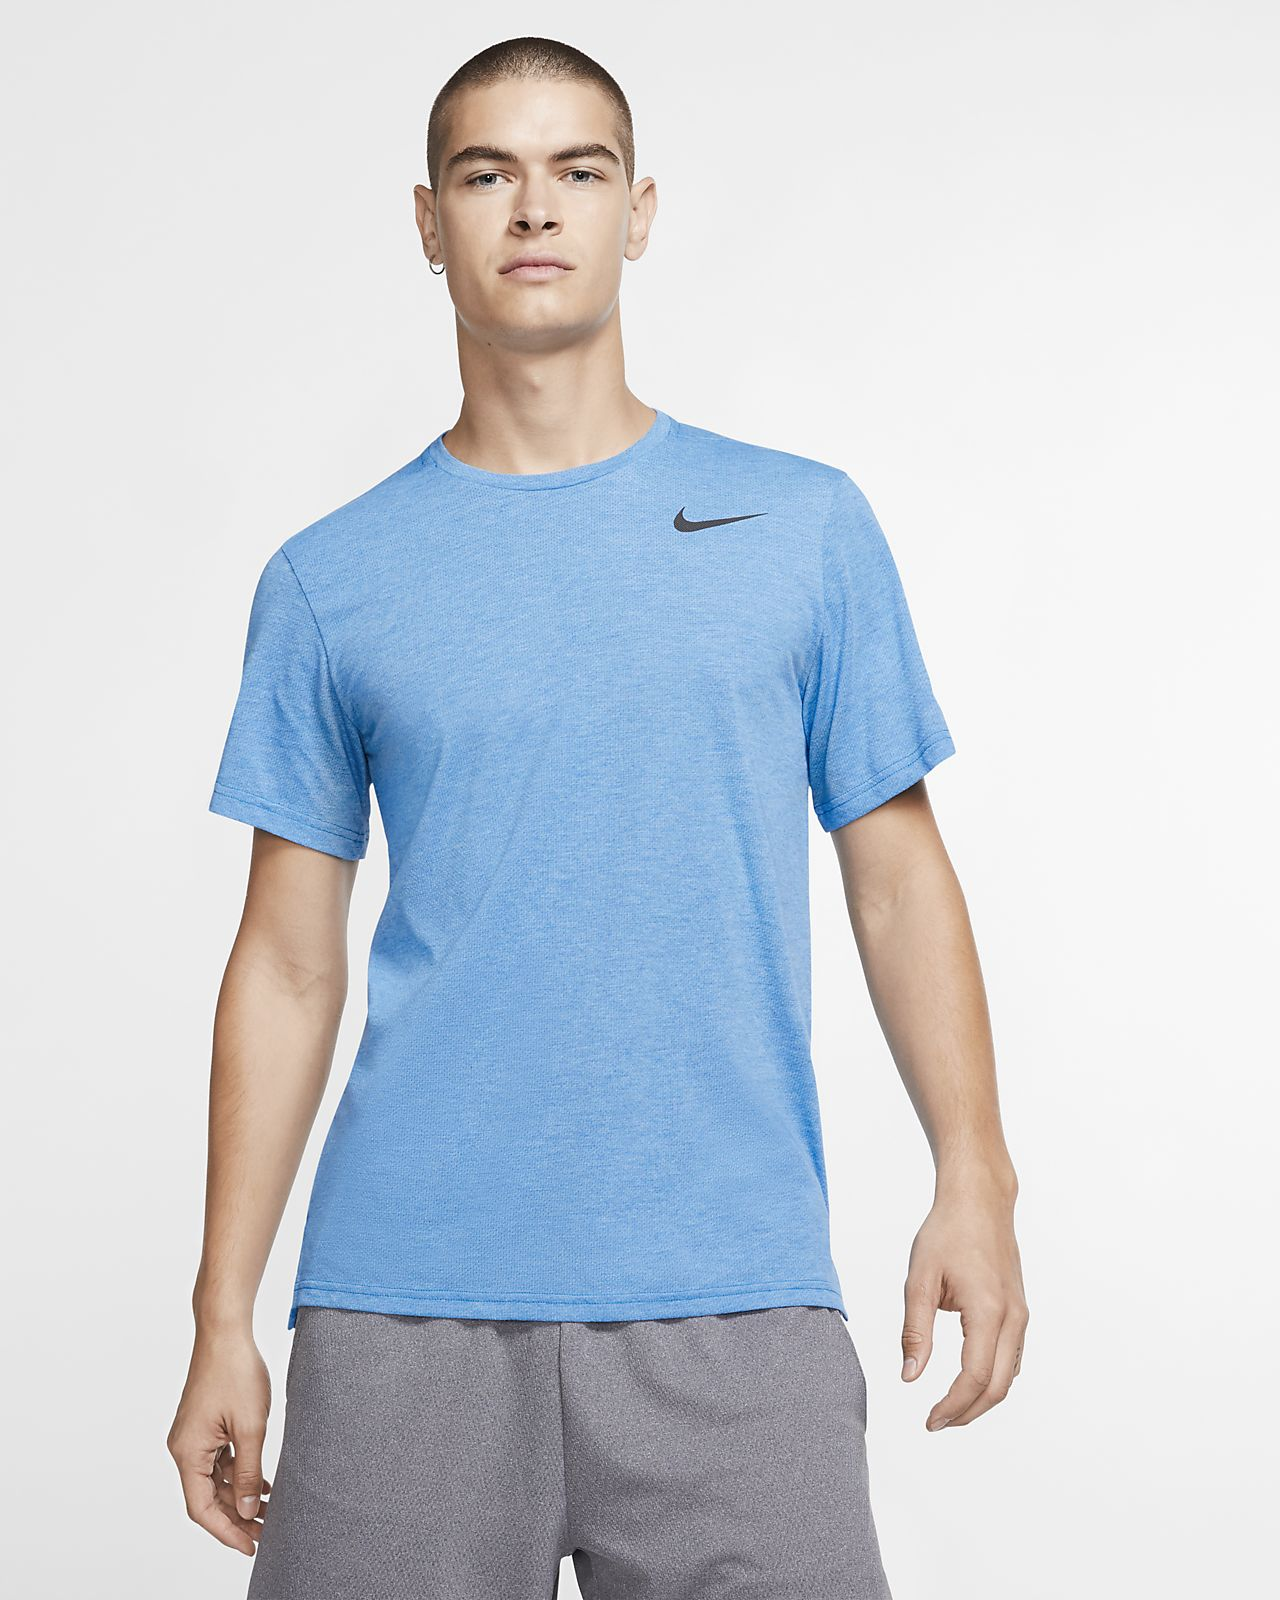 e7ee84893df1f Nike Breathe Men's Short-Sleeve Training Top. Nike.com